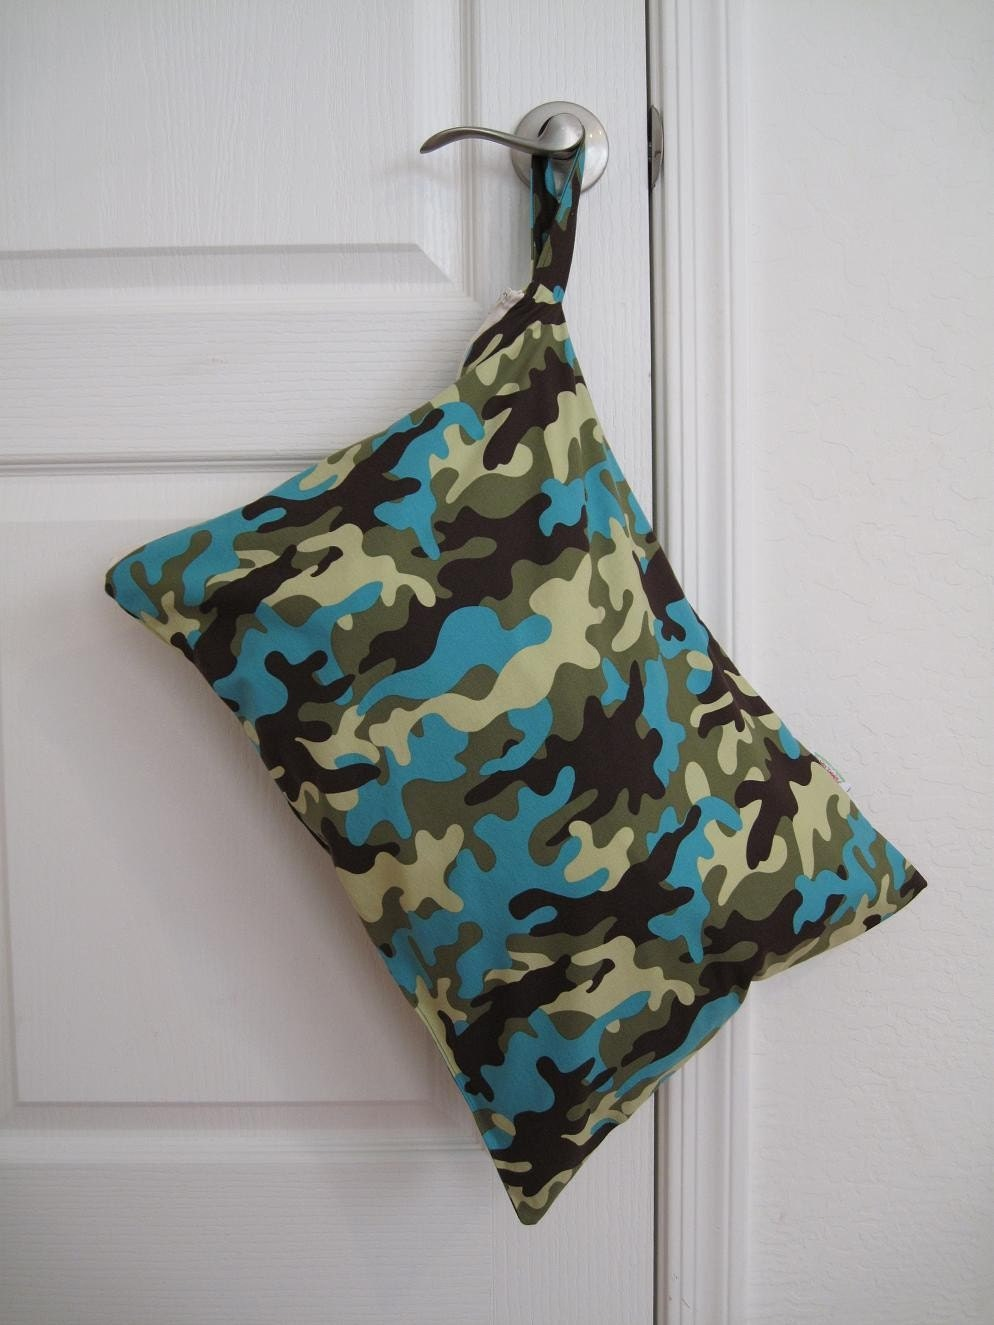 Large Wet Bag (14x20), Michael Miller CAMO, Cloth Diapers, Swim Suits, Gym, Travel